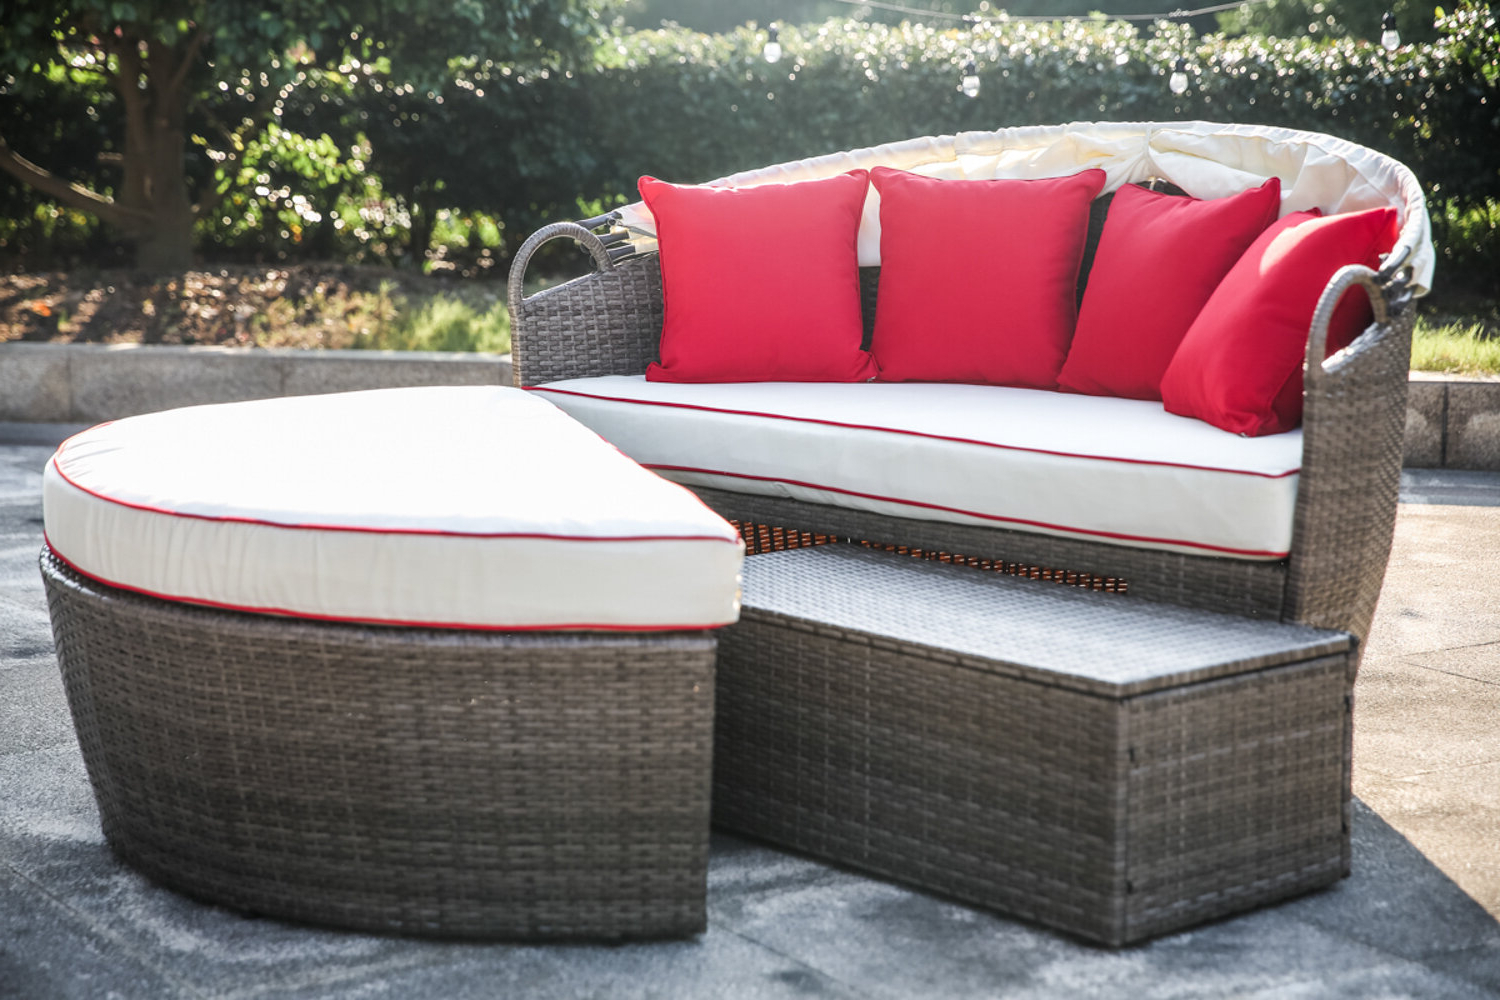 Favorite Aubrie Patio Daybeds With Cushions With Regard To Fansler Patio Daybed With Cushions (View 12 of 25)